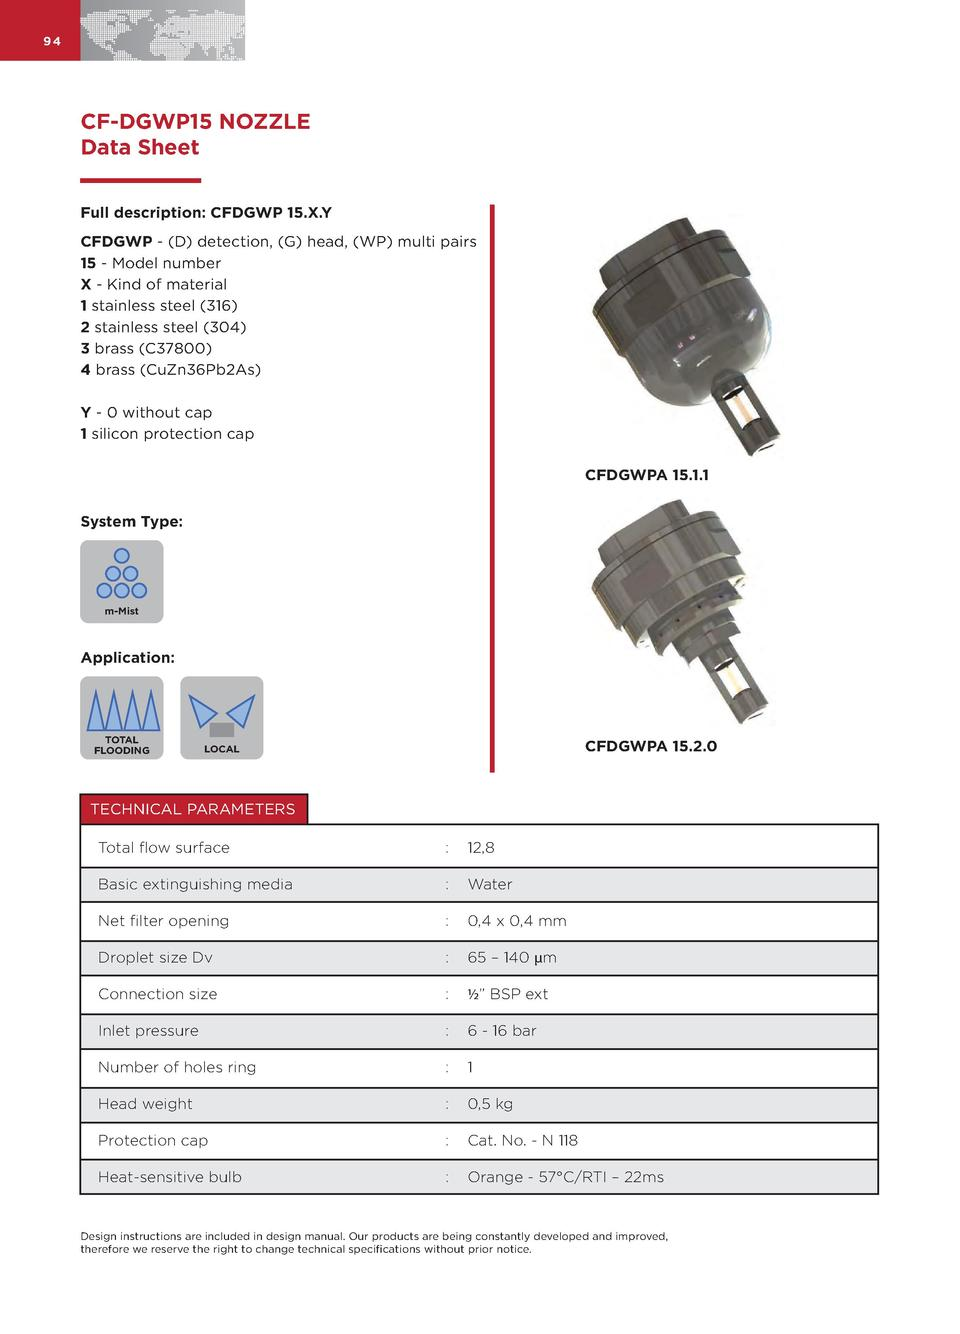 94  CF-DGWP15 NOZZLE Data Sheet Full description  CFDGWP 15.X.Y CFDGWP -  D  detection,  G  head,  WP  multi pairs 15 - Mo...